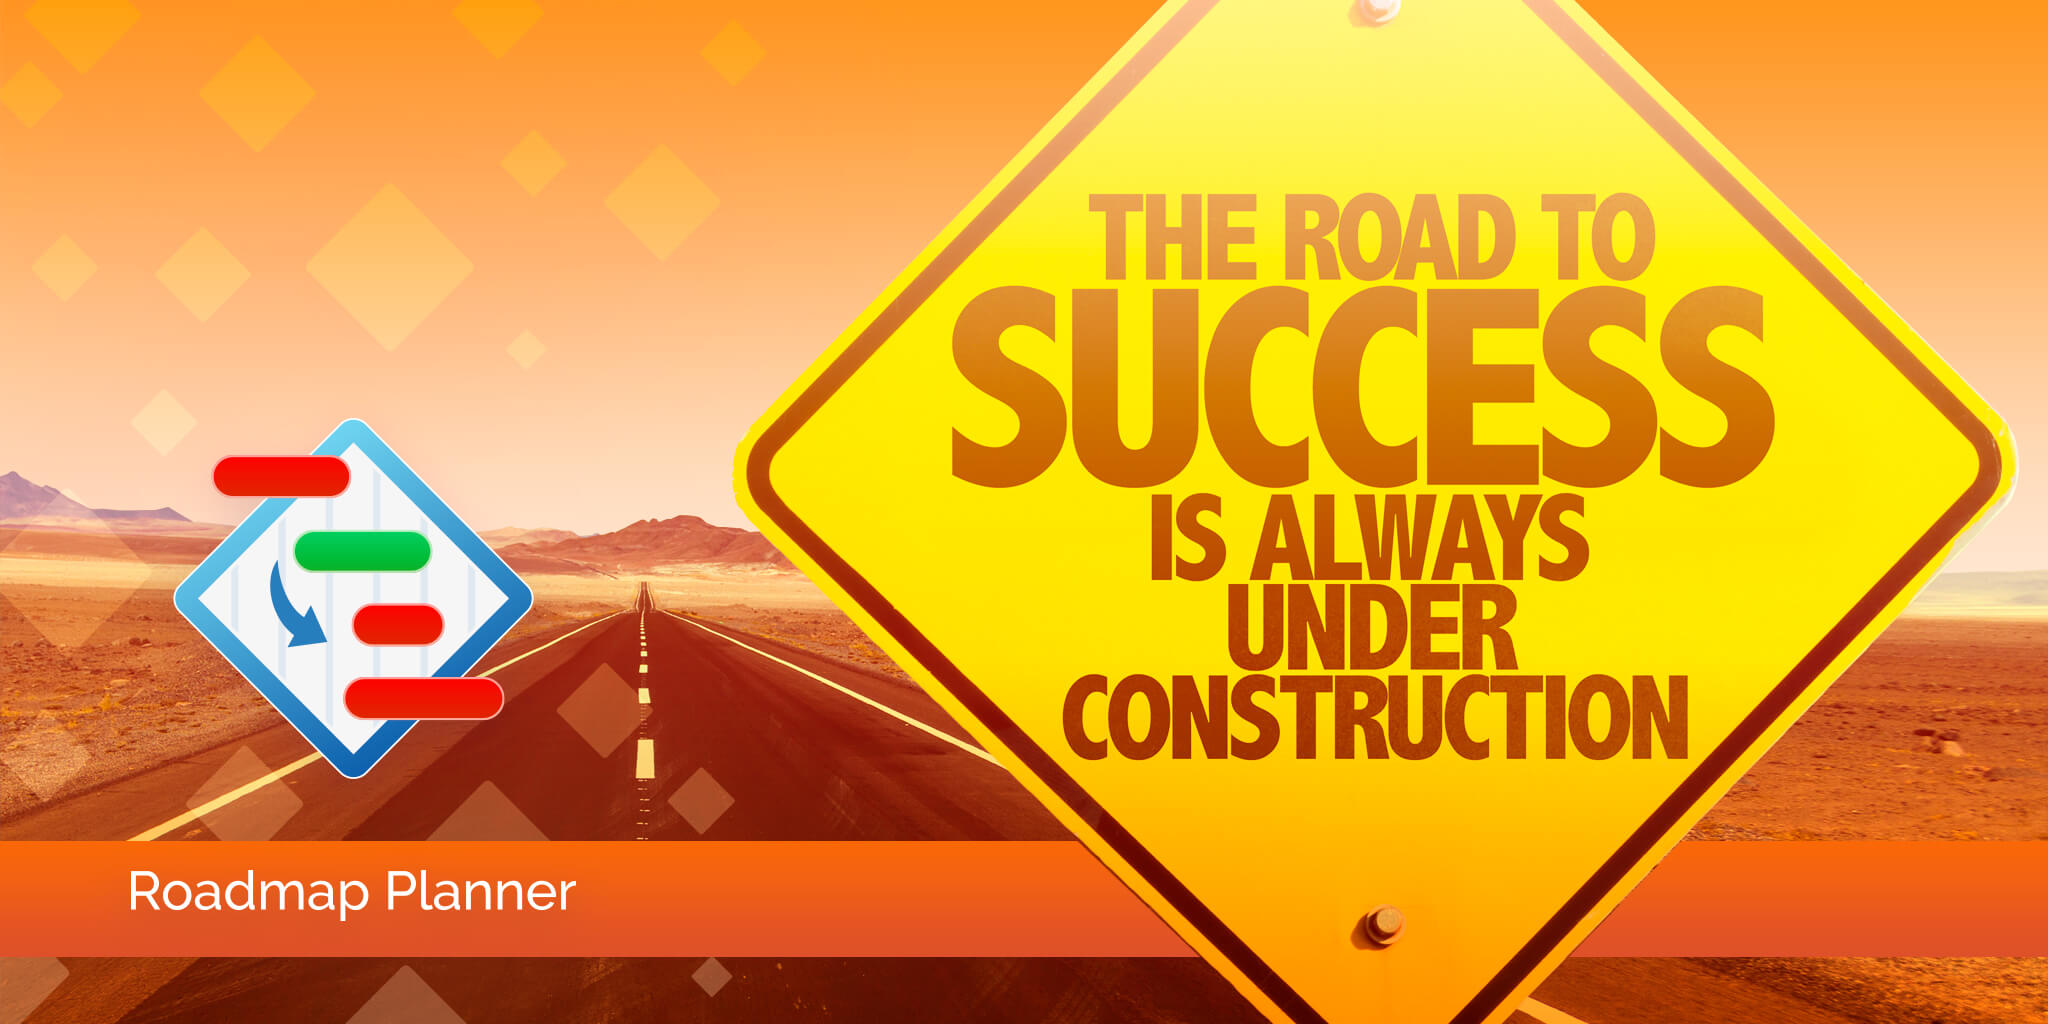 The road to success is always under construction - build it!